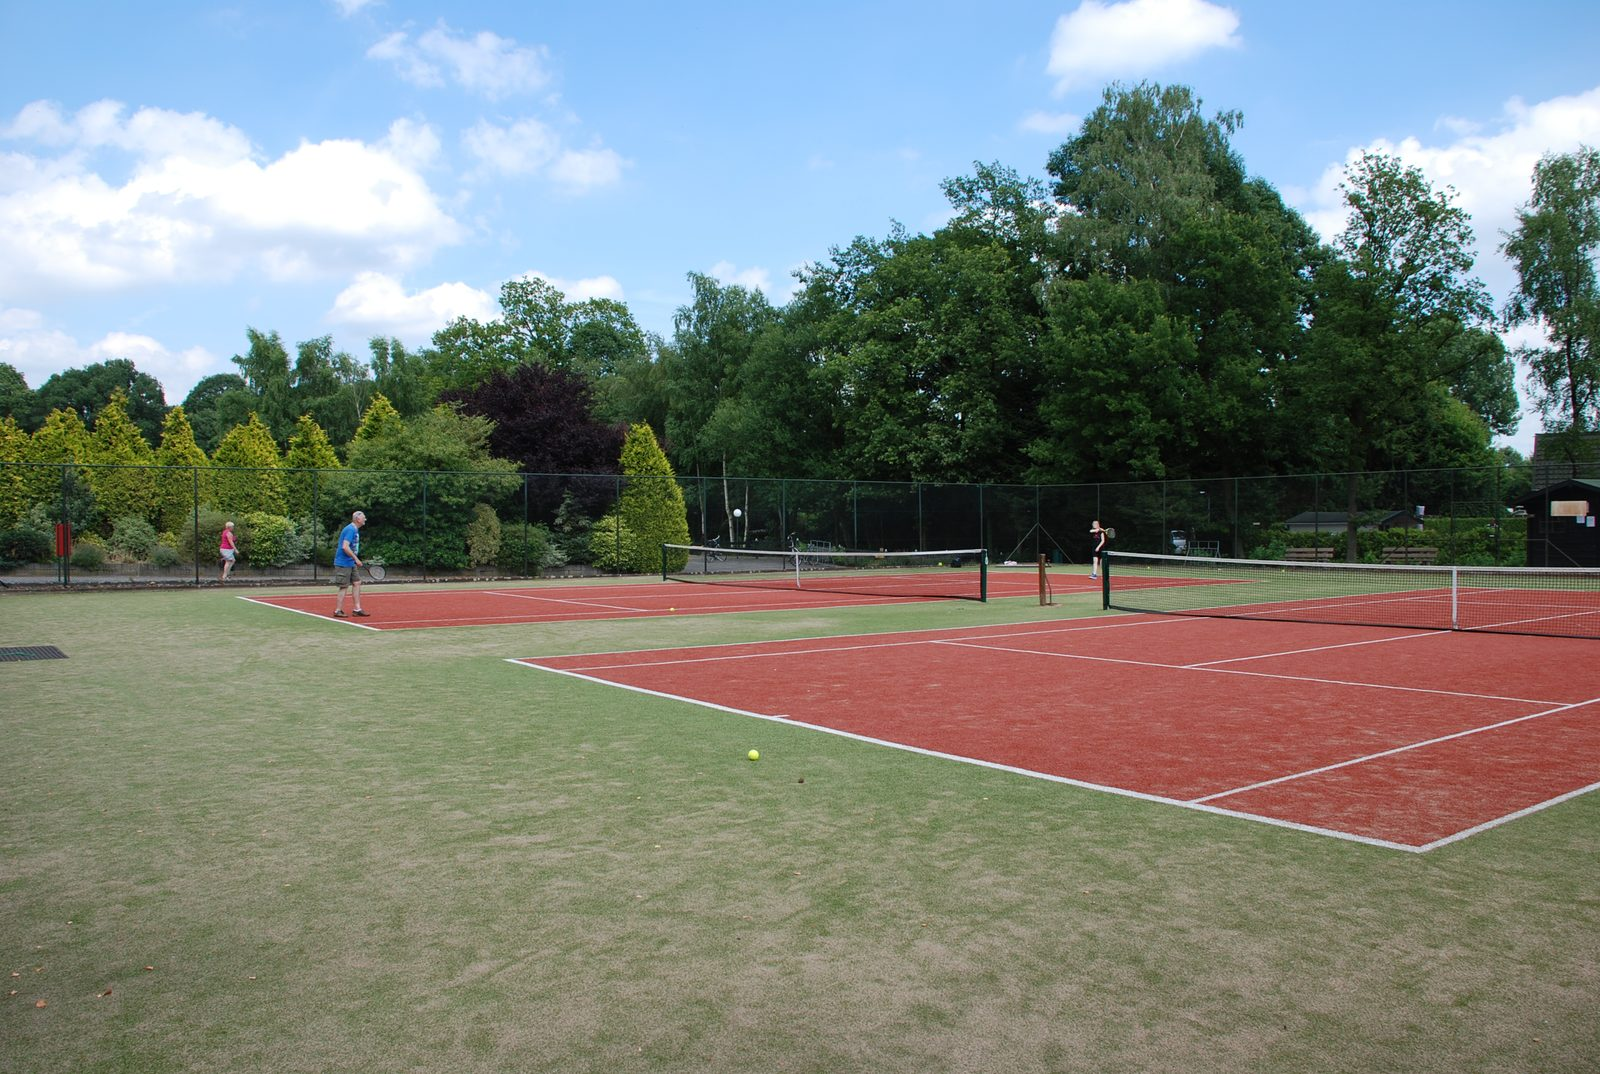 Parc de Kievit has a 10-person holiday home in Brabant, where you can use the tennis courts.